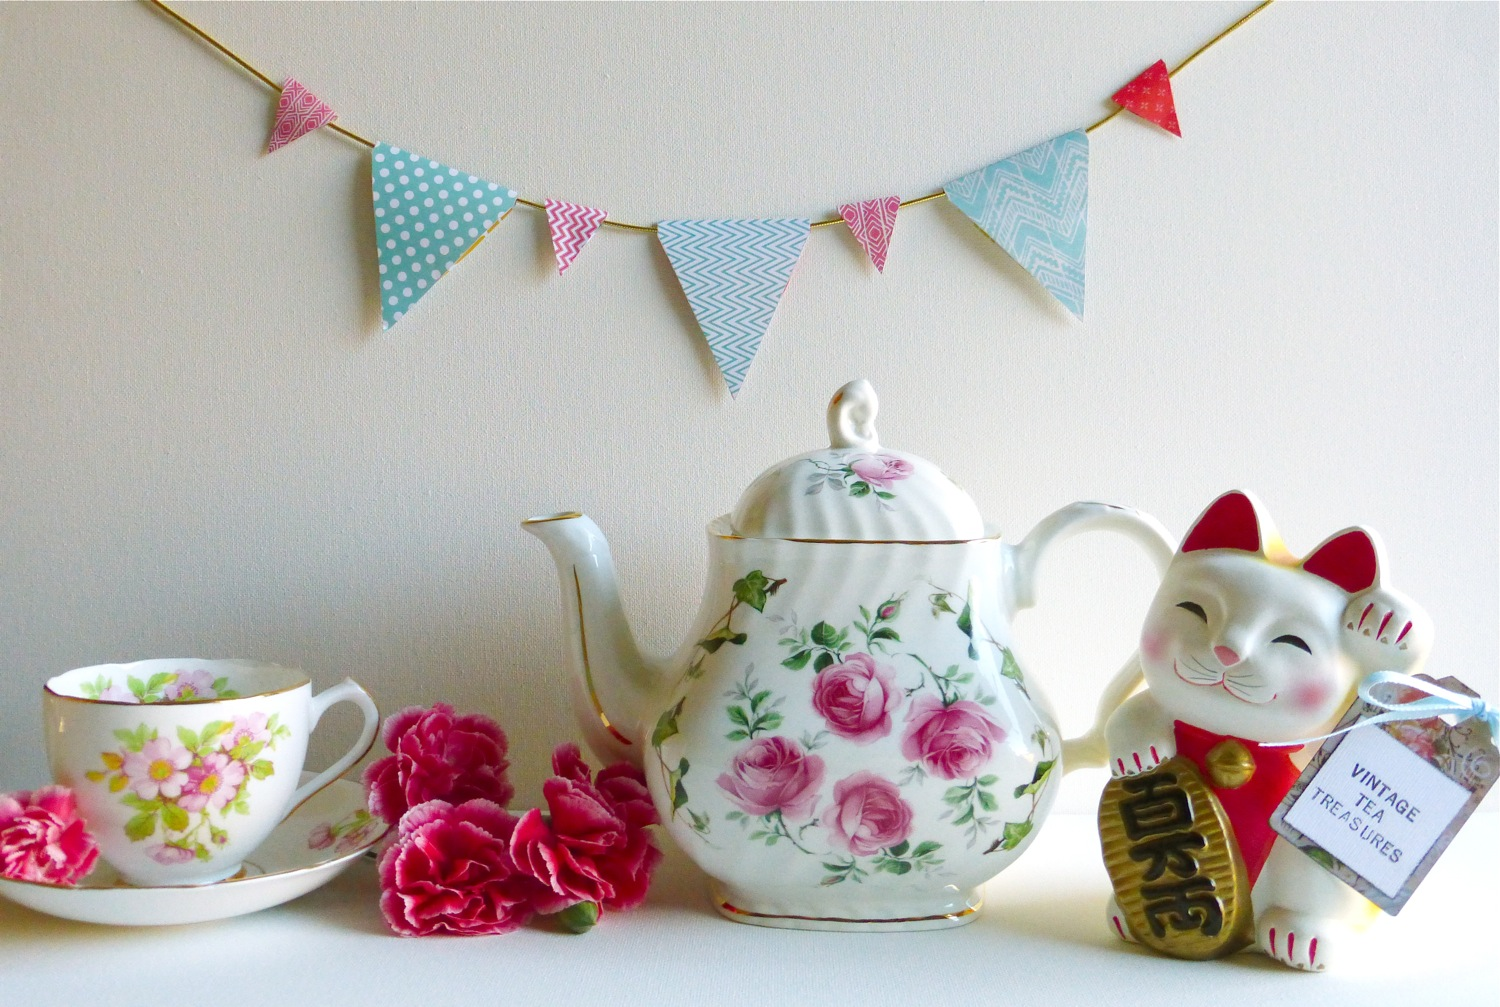 Vintage Tea Treasures, Vintage Tea Treasures on Etsy, Vintage Tea Treasures Etsy Shop, Crown Dorset teapot, pink rose Crown Dorset teapot,